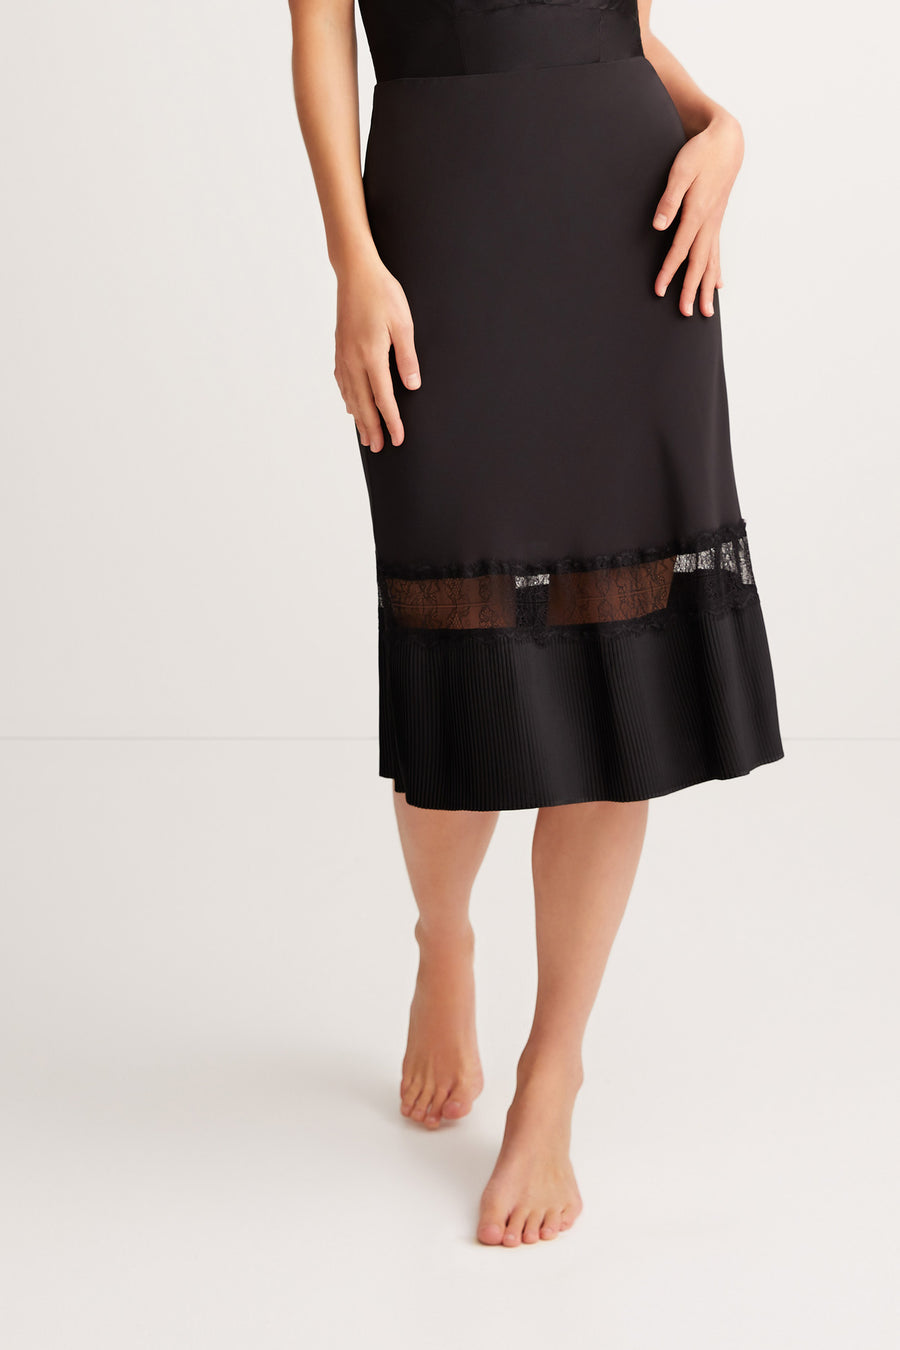 Osiris Skirt {Black}